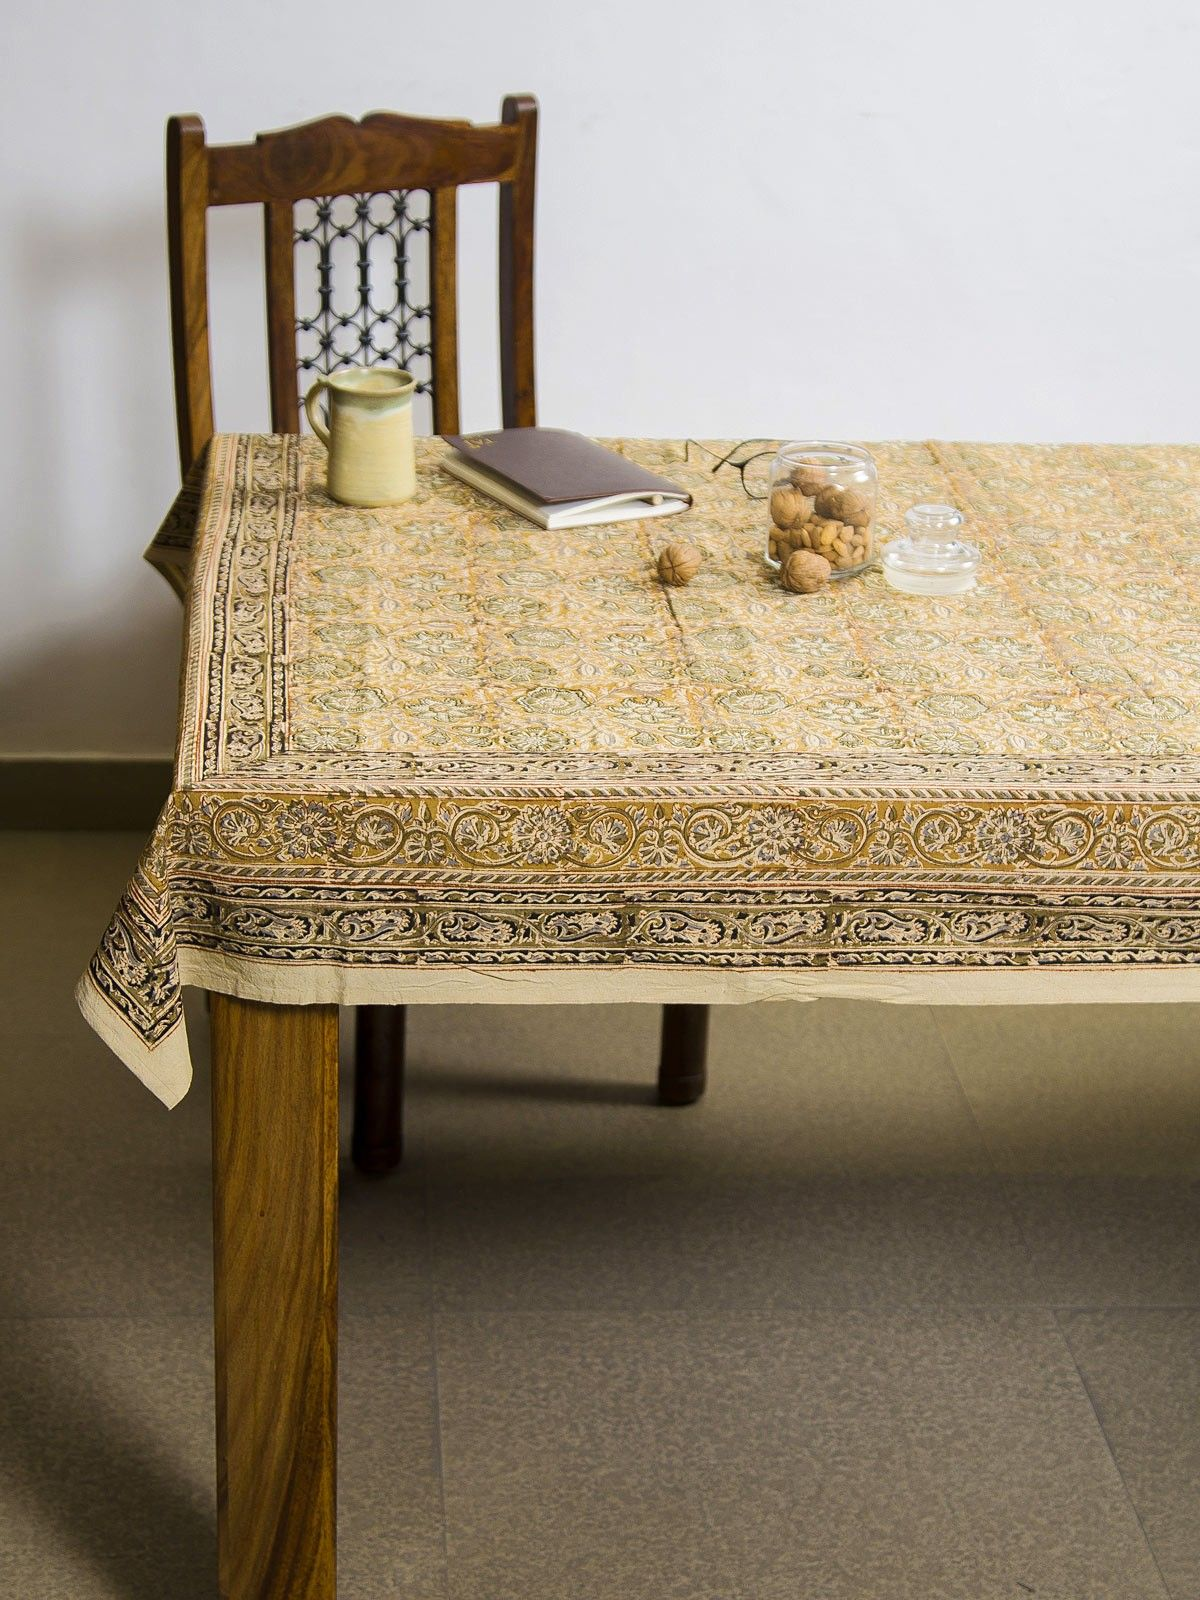 Dijon Sumana Kalamkari 4 seater table cover